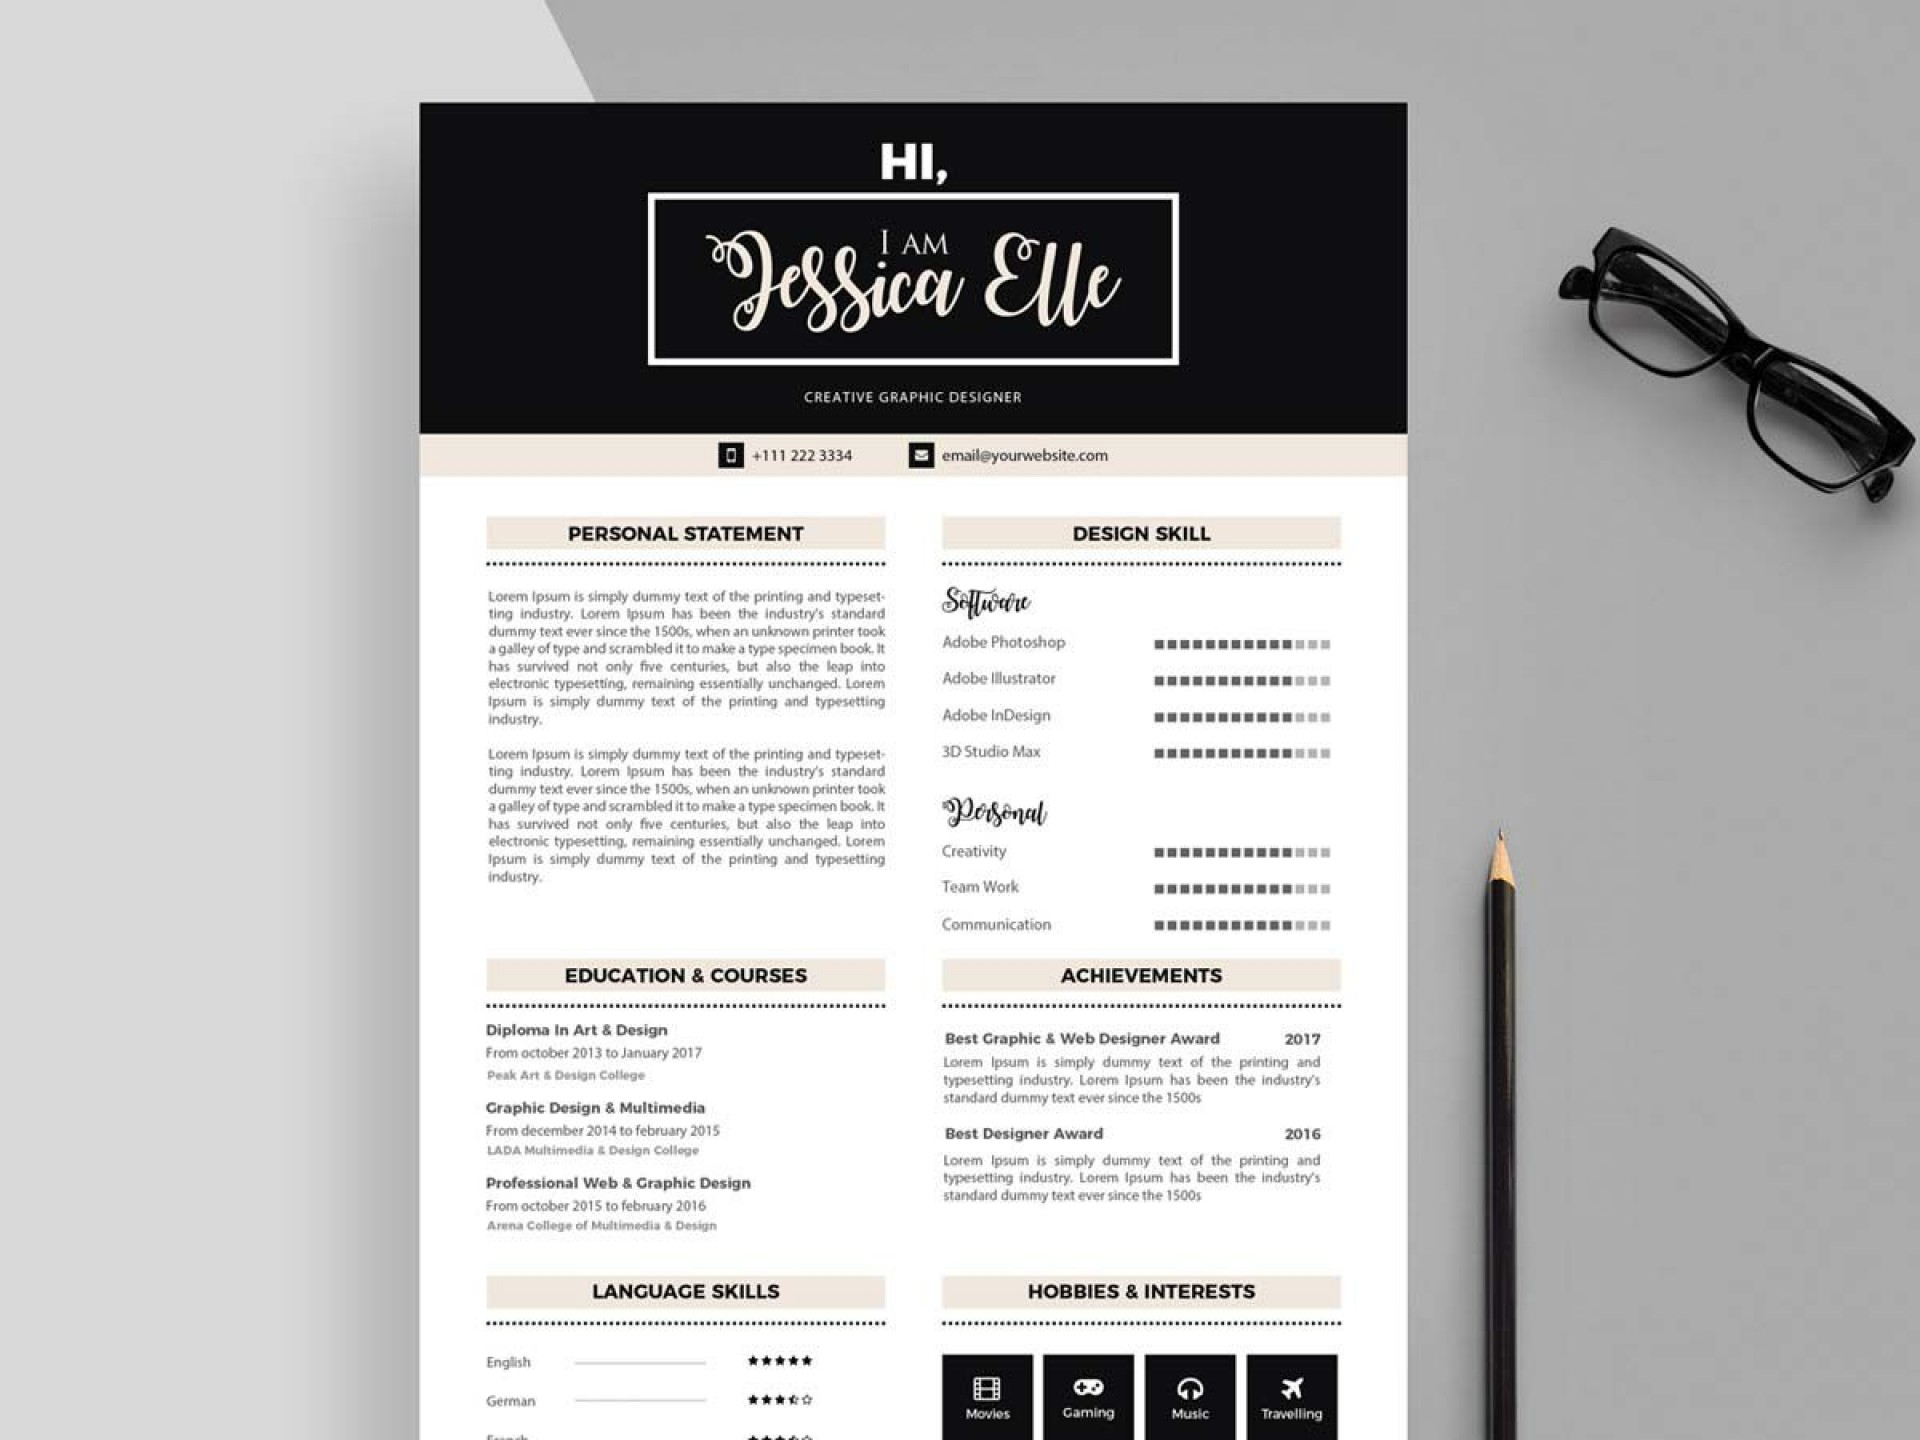 003 Outstanding Adobe Photoshop Resume Template Free Photo  Download1920